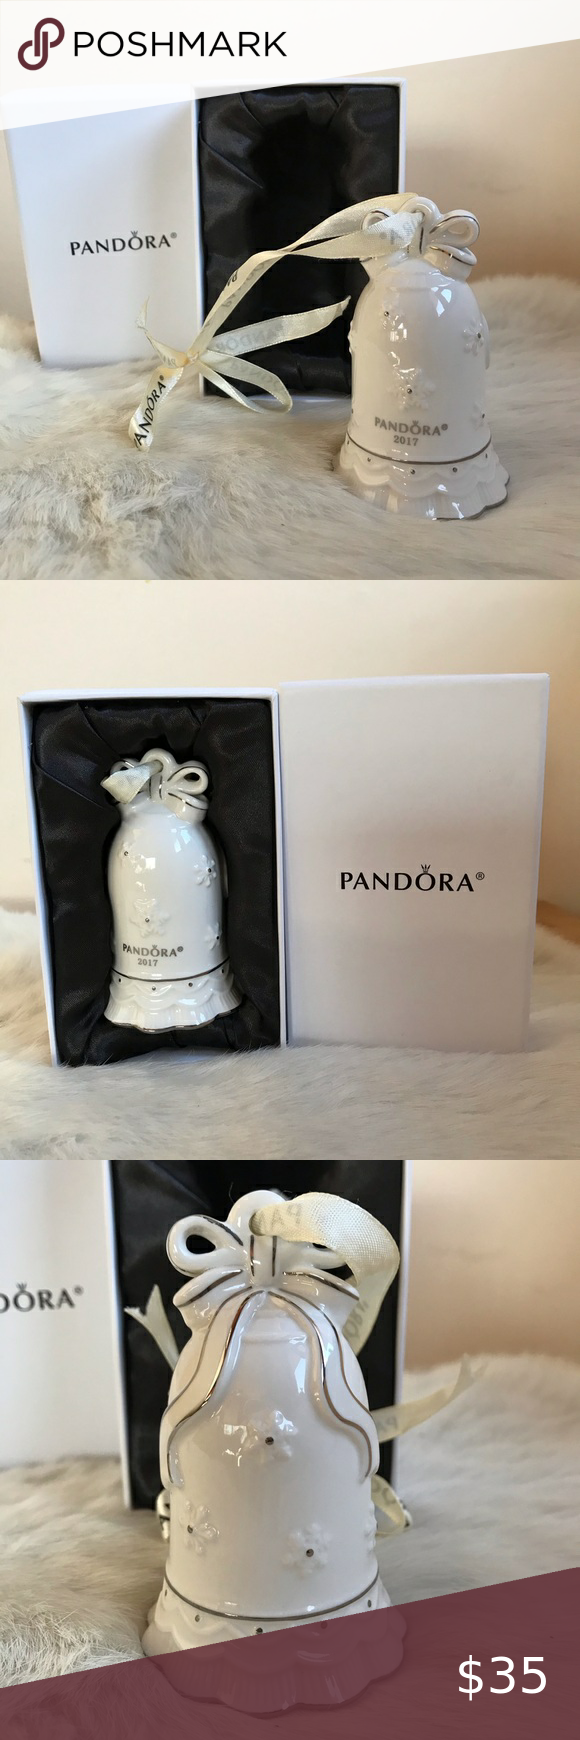 Pandora Christmas Ornament 2020 Pandora 2017 Ornament Christmas Bell Ivory Limited in 2020